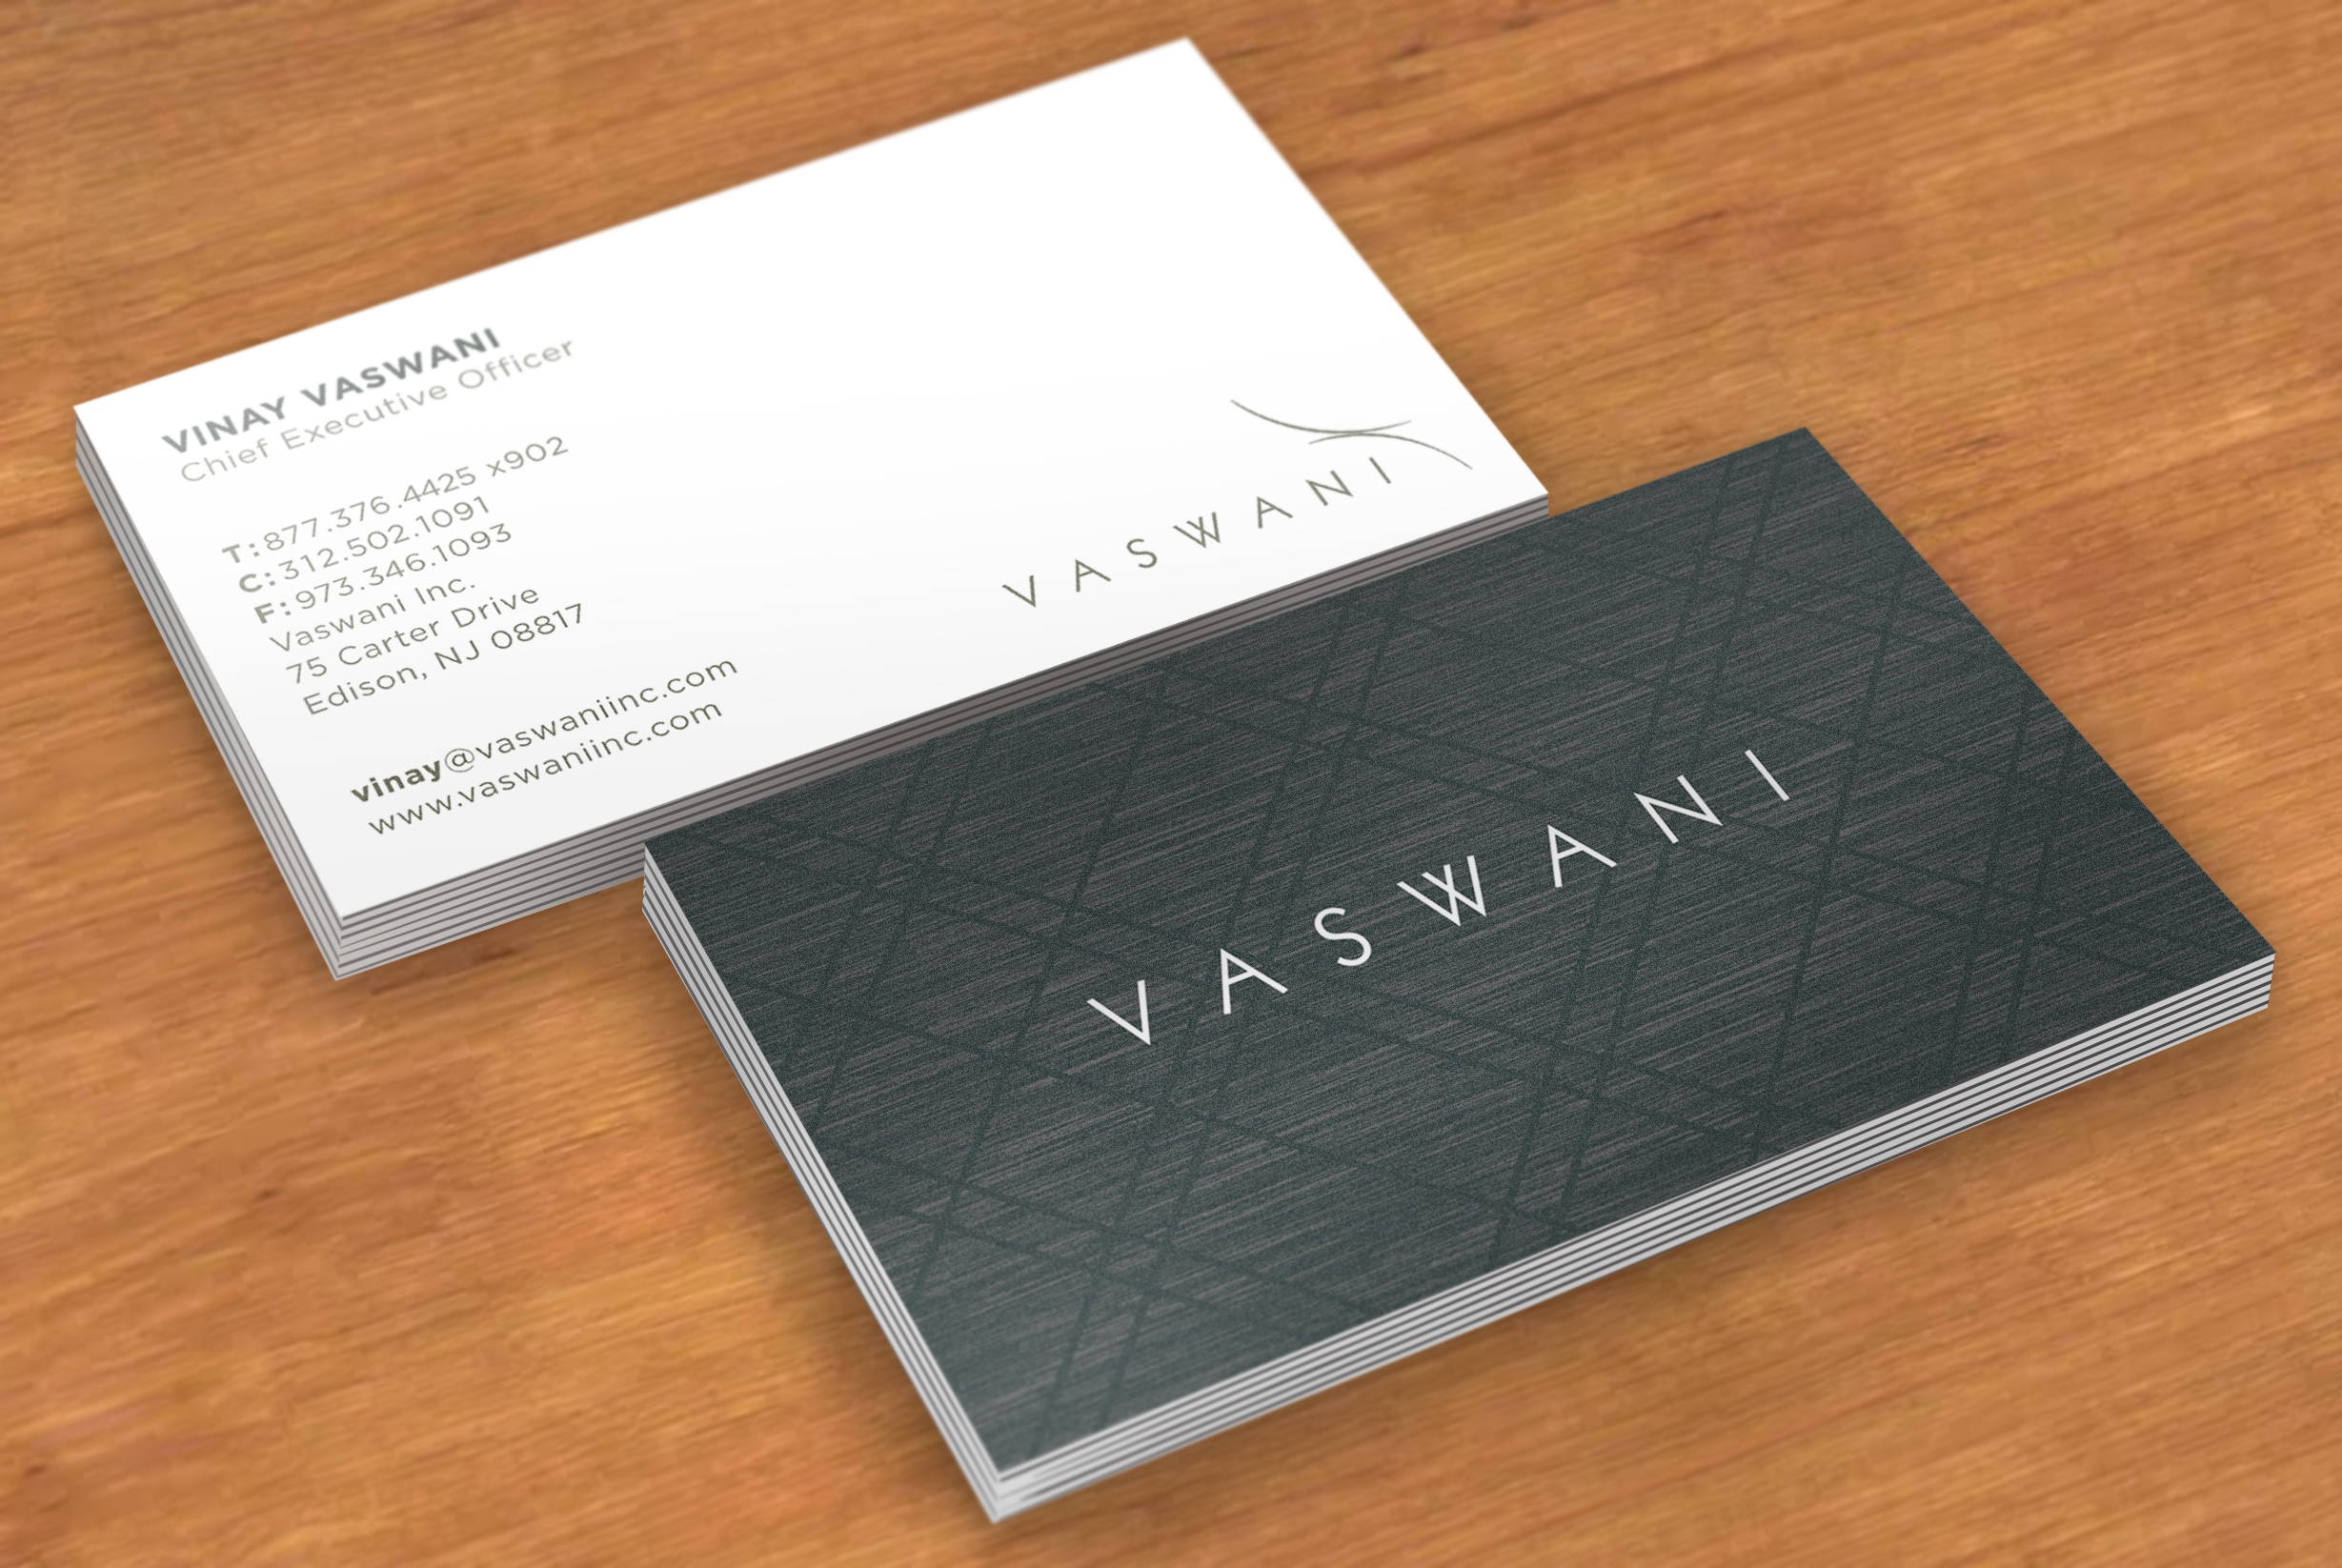 Design 2 professional business cards, 2 concepts, 12hrs by Furyshaa